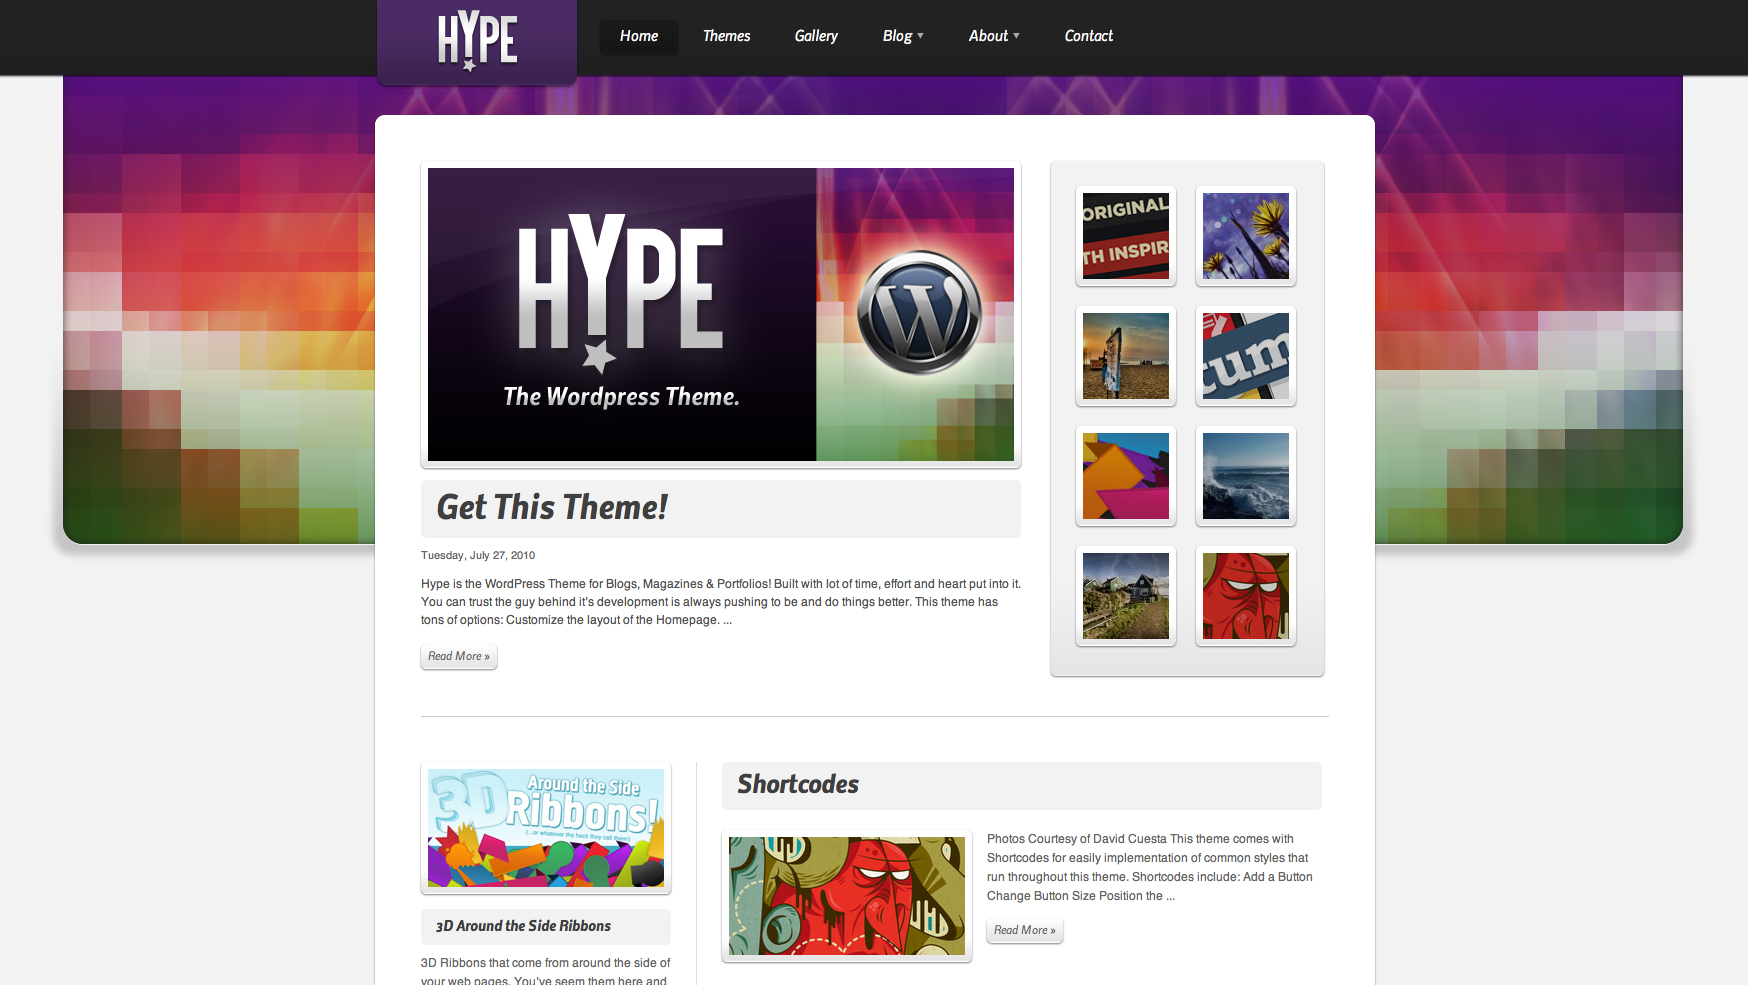 Hype Wordpress Theme Blogs, Magazines & Portfolios